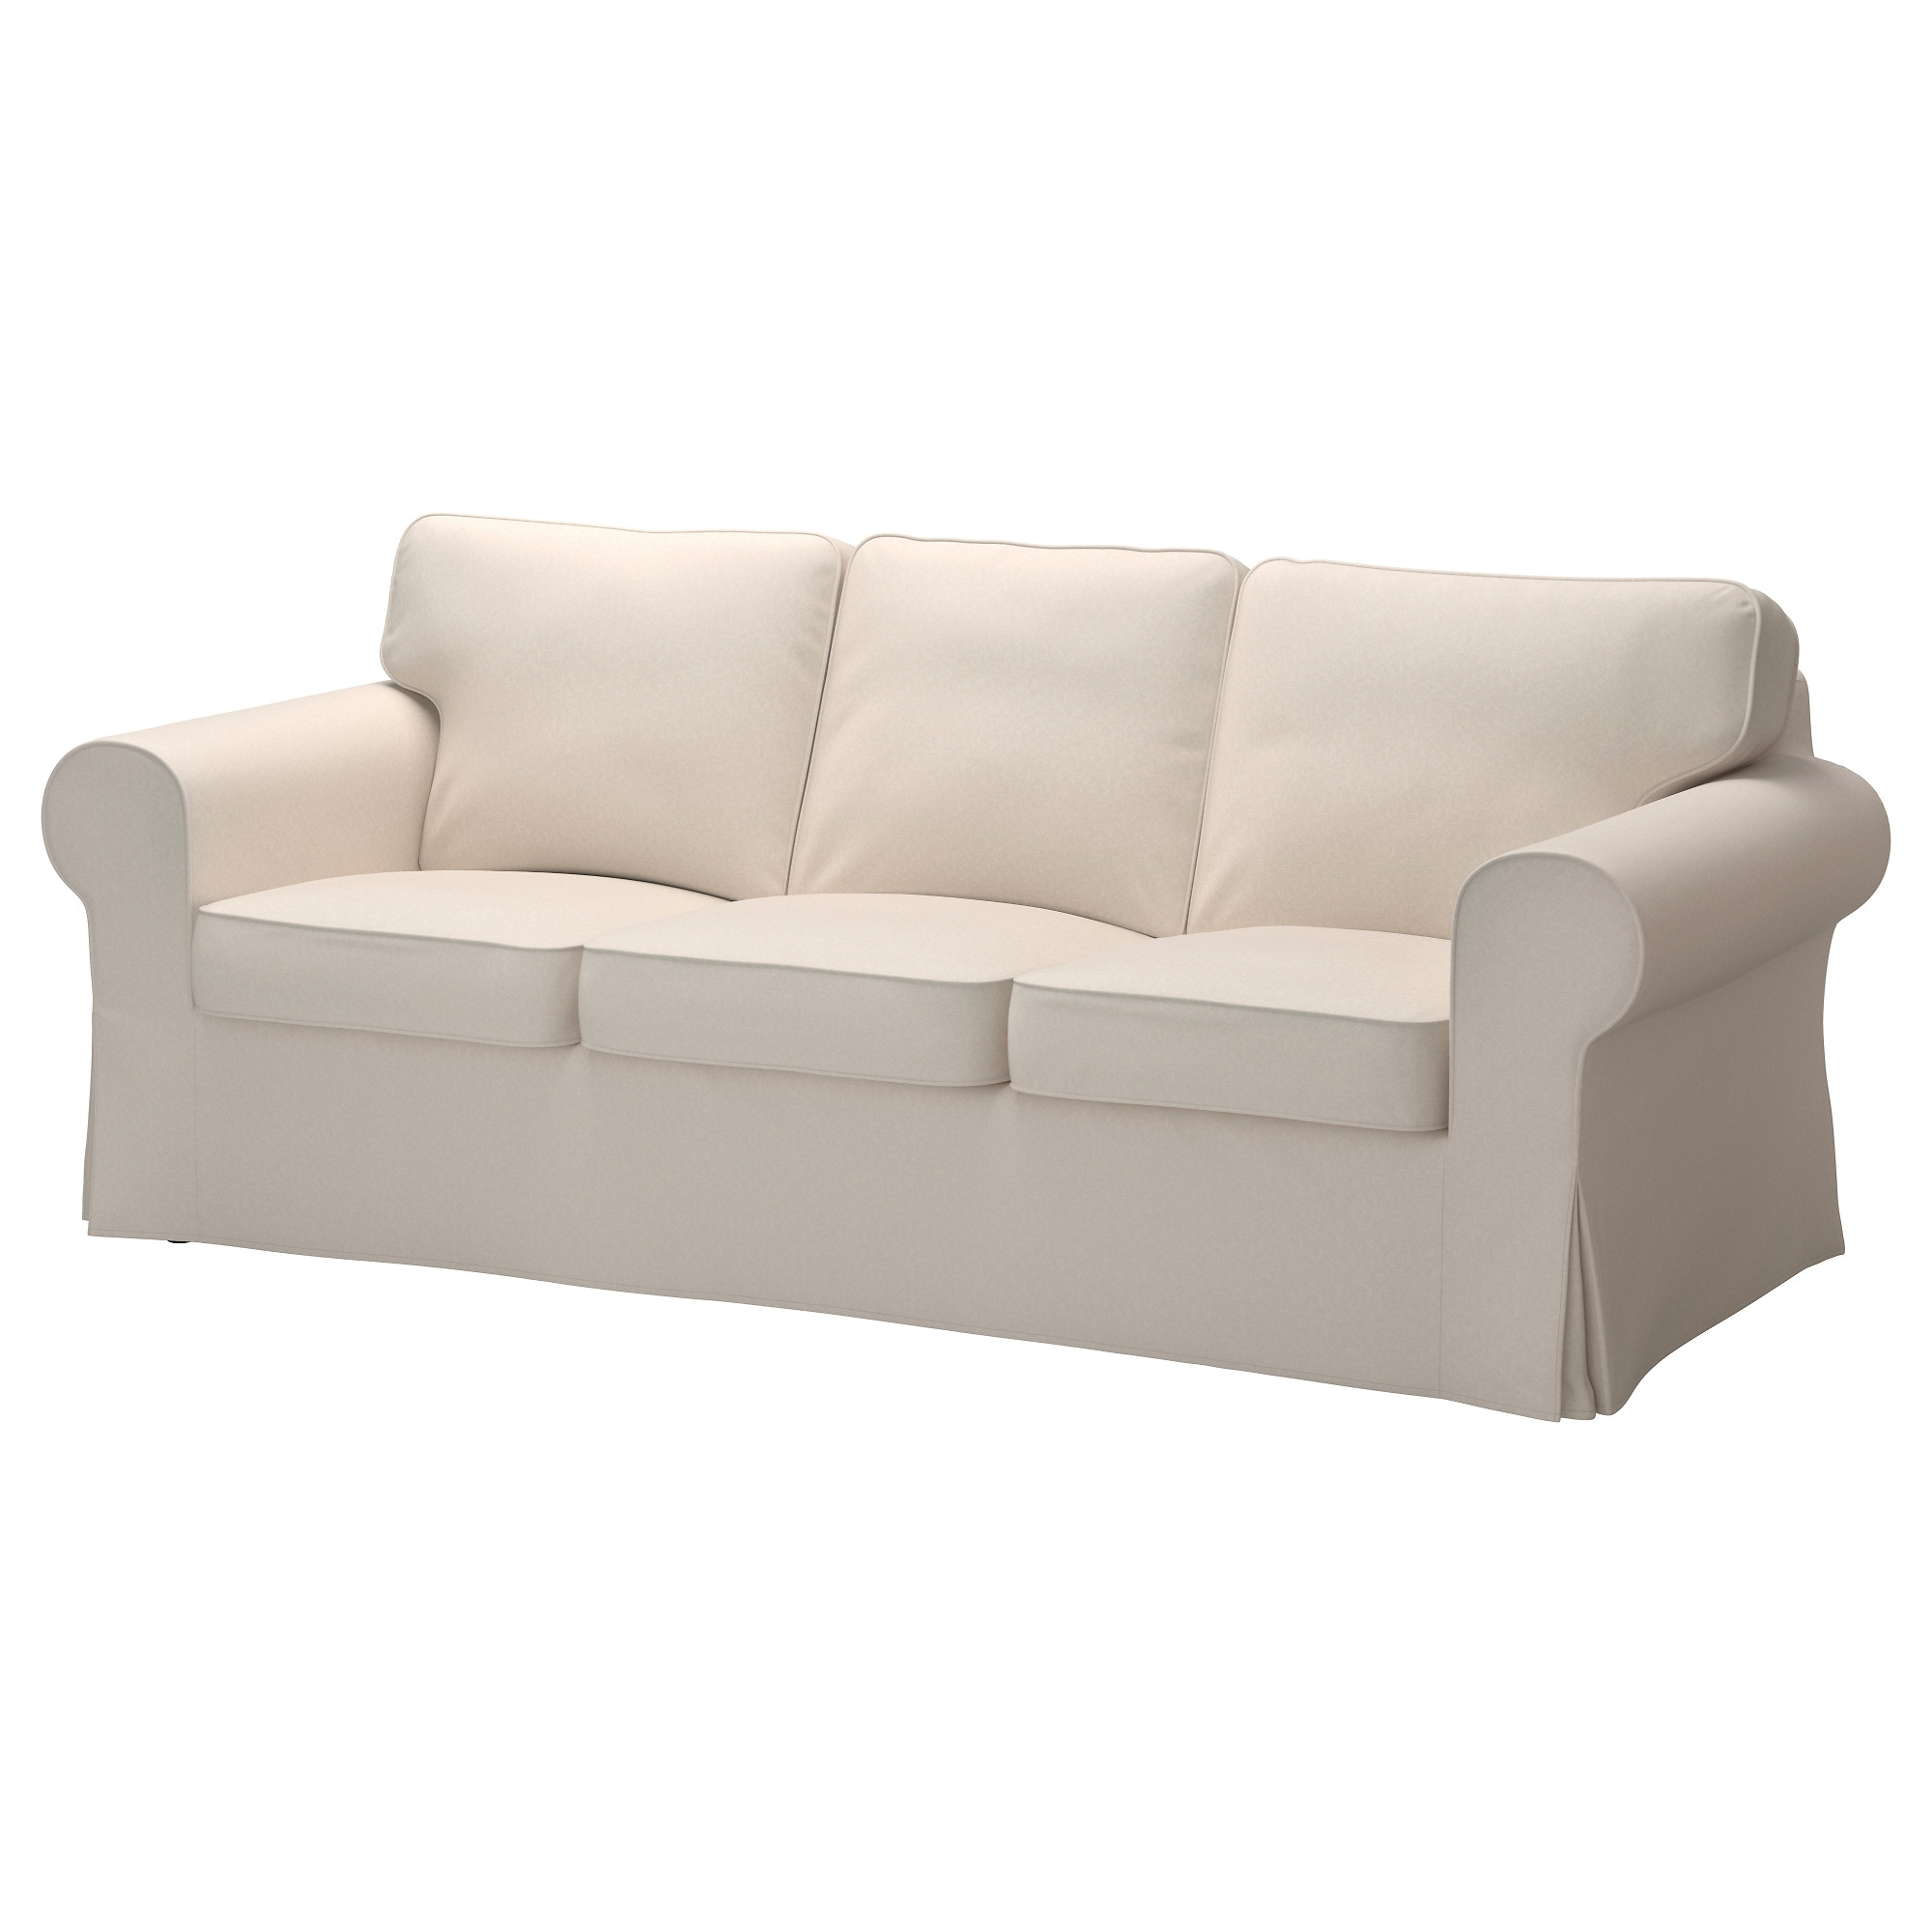 Ektorp Sofa Lofallet Beige Ikea For Sofa Chairs Ikea (Image 2 of 15)